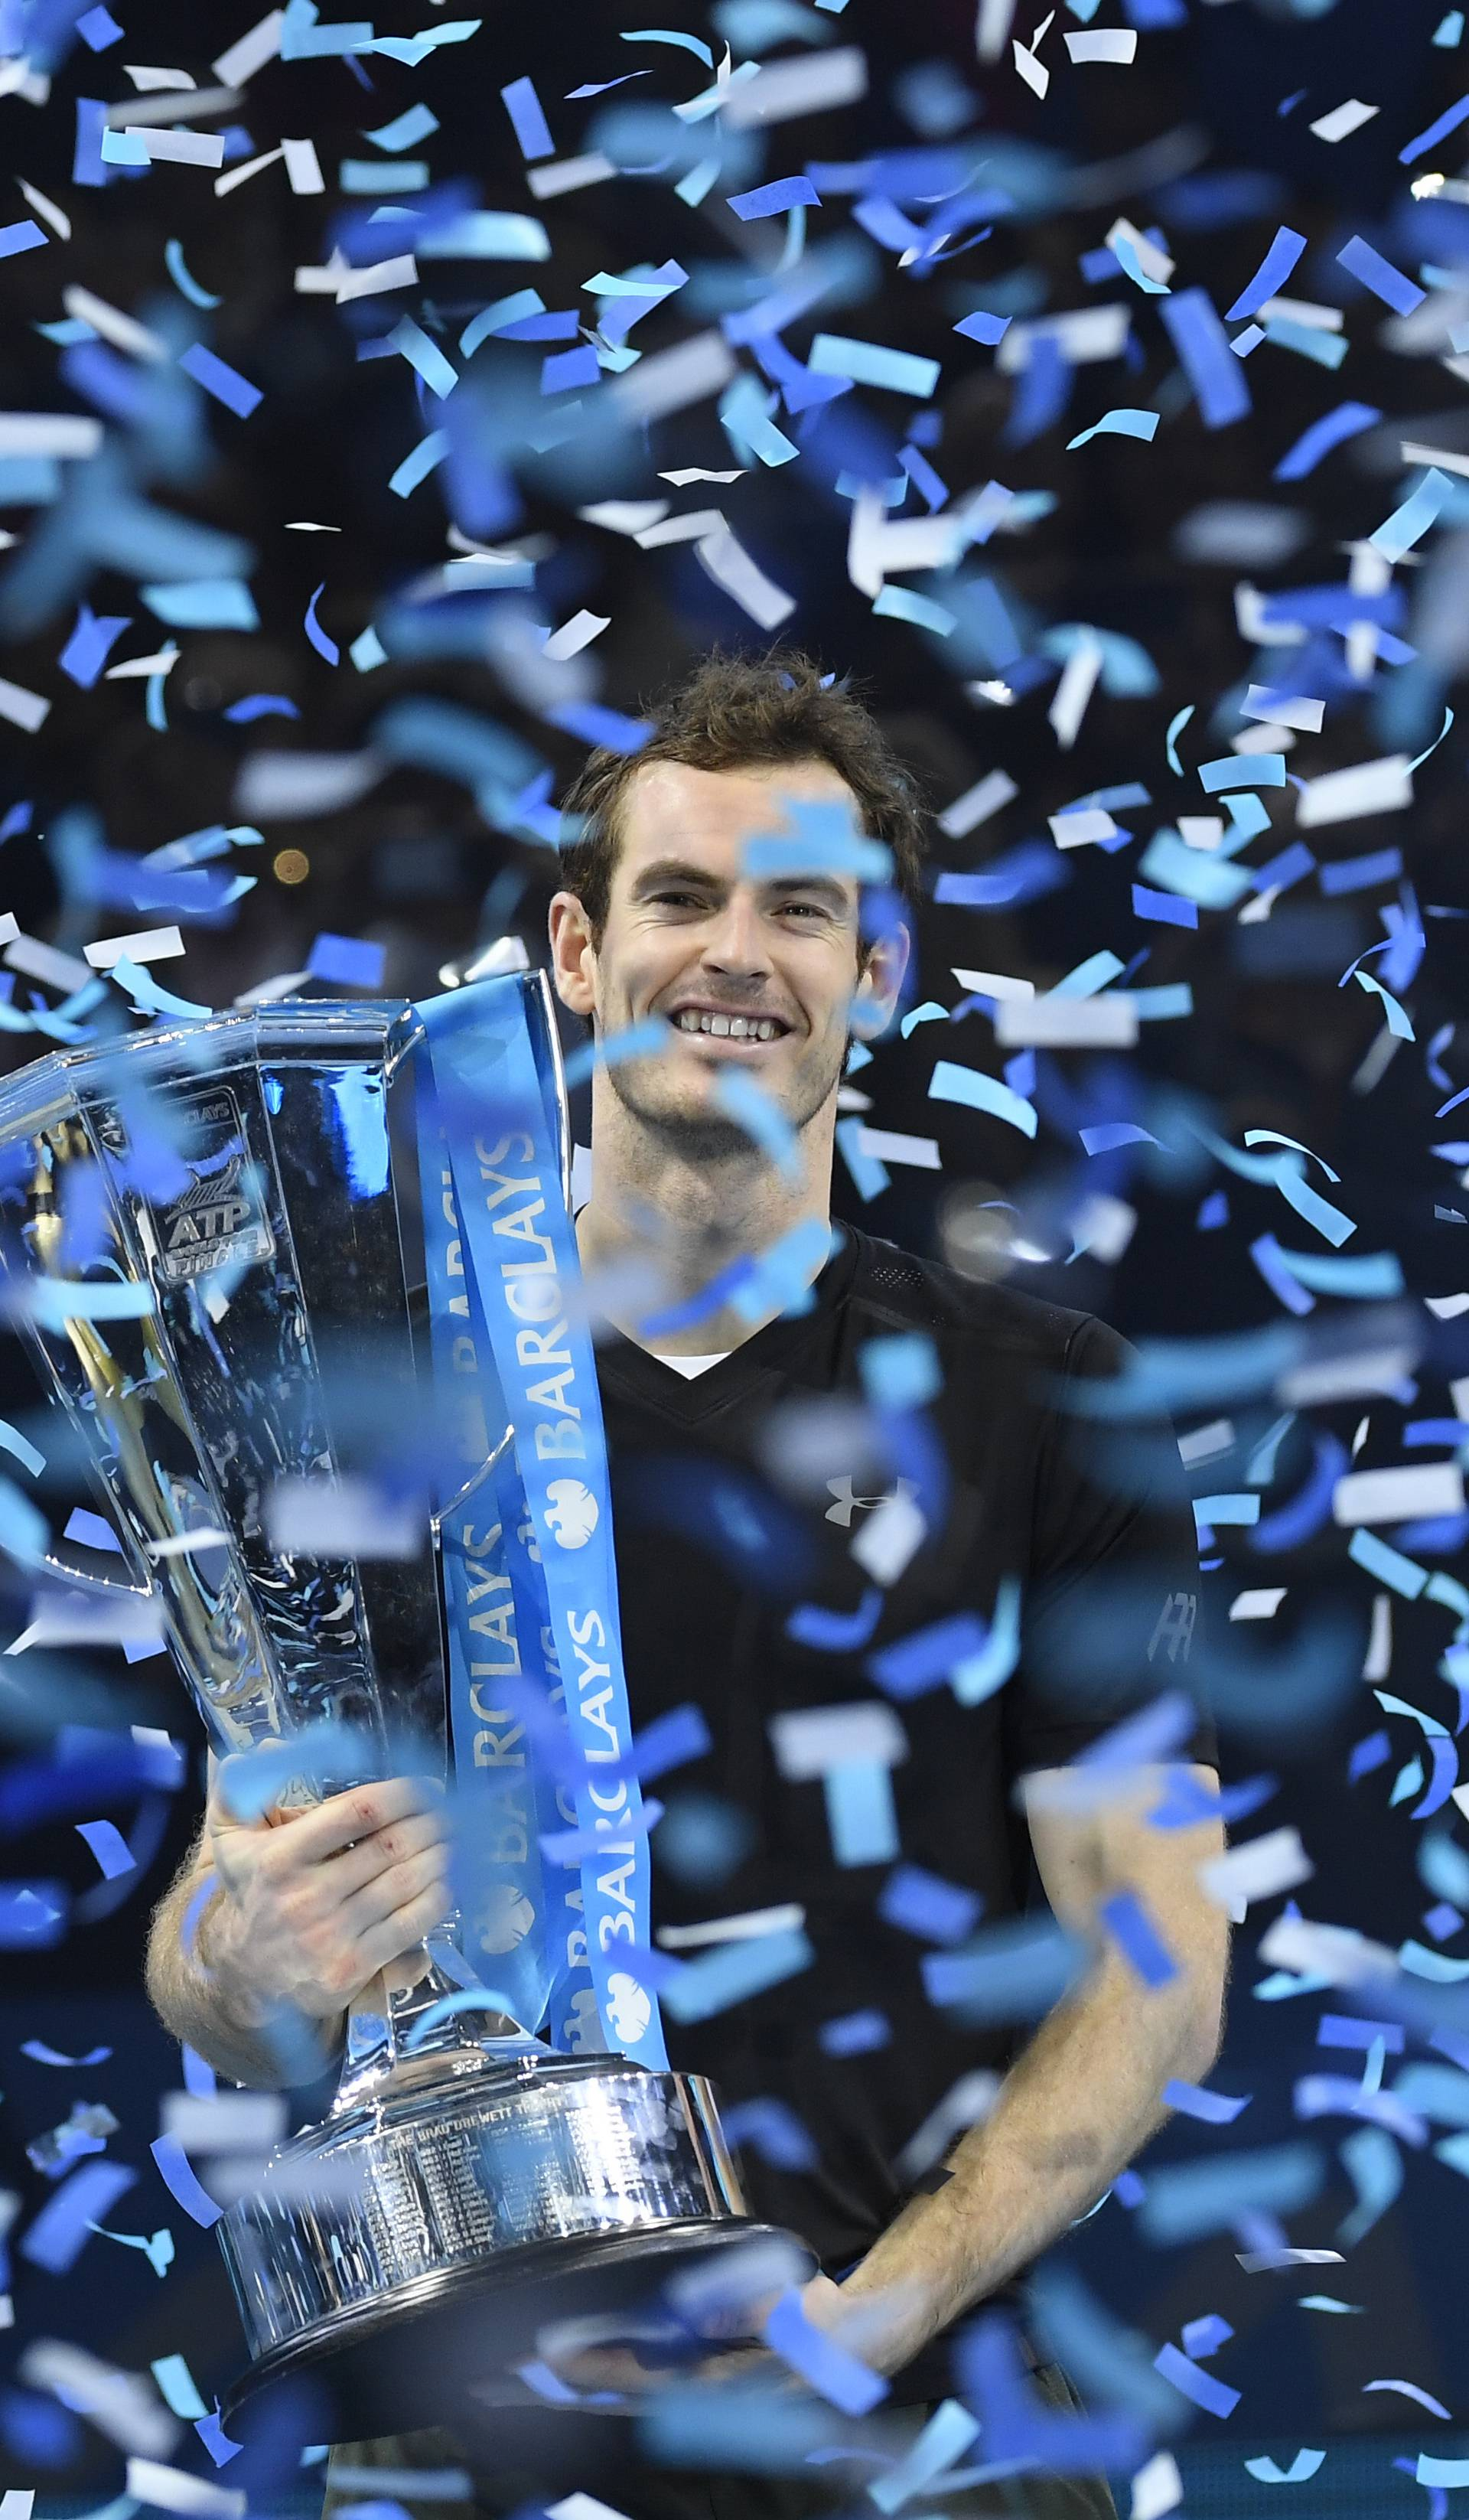 Great Britain's Andy Murray celebrates winning the final against Serbia's Novak Djokovic with the ATP World Tour Finals trophy